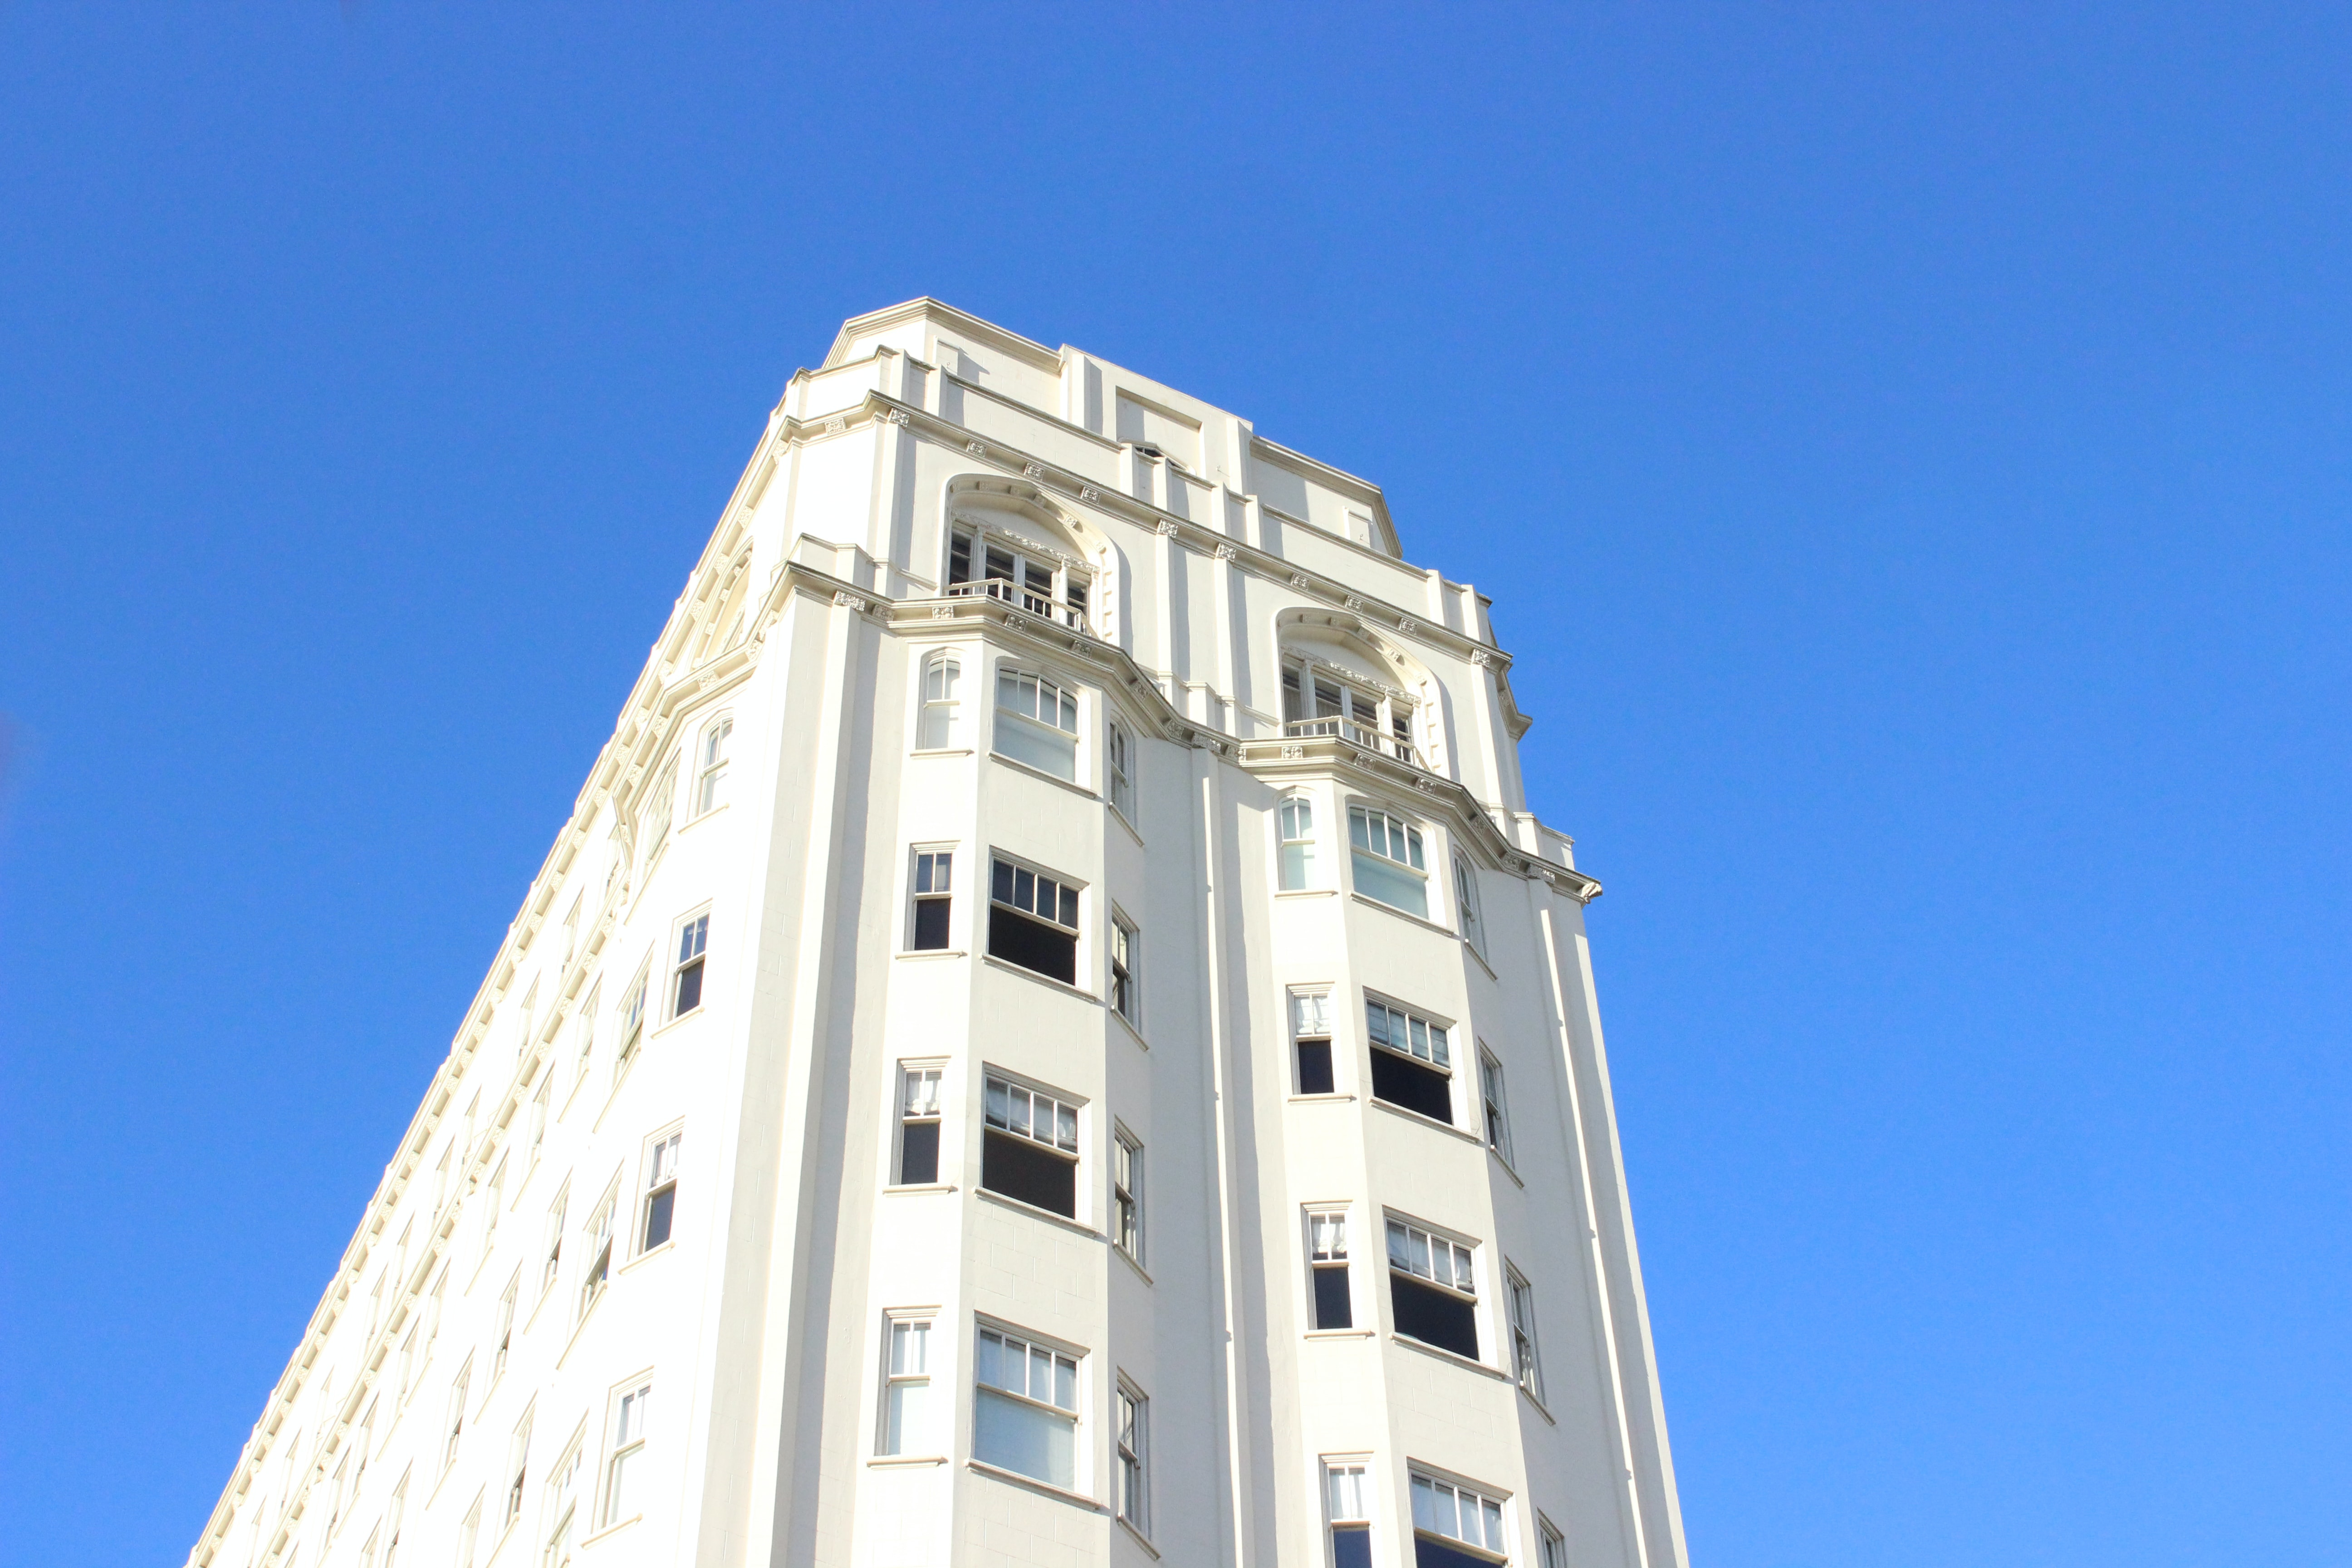 Looking skyward from an old white building in San Francisco.